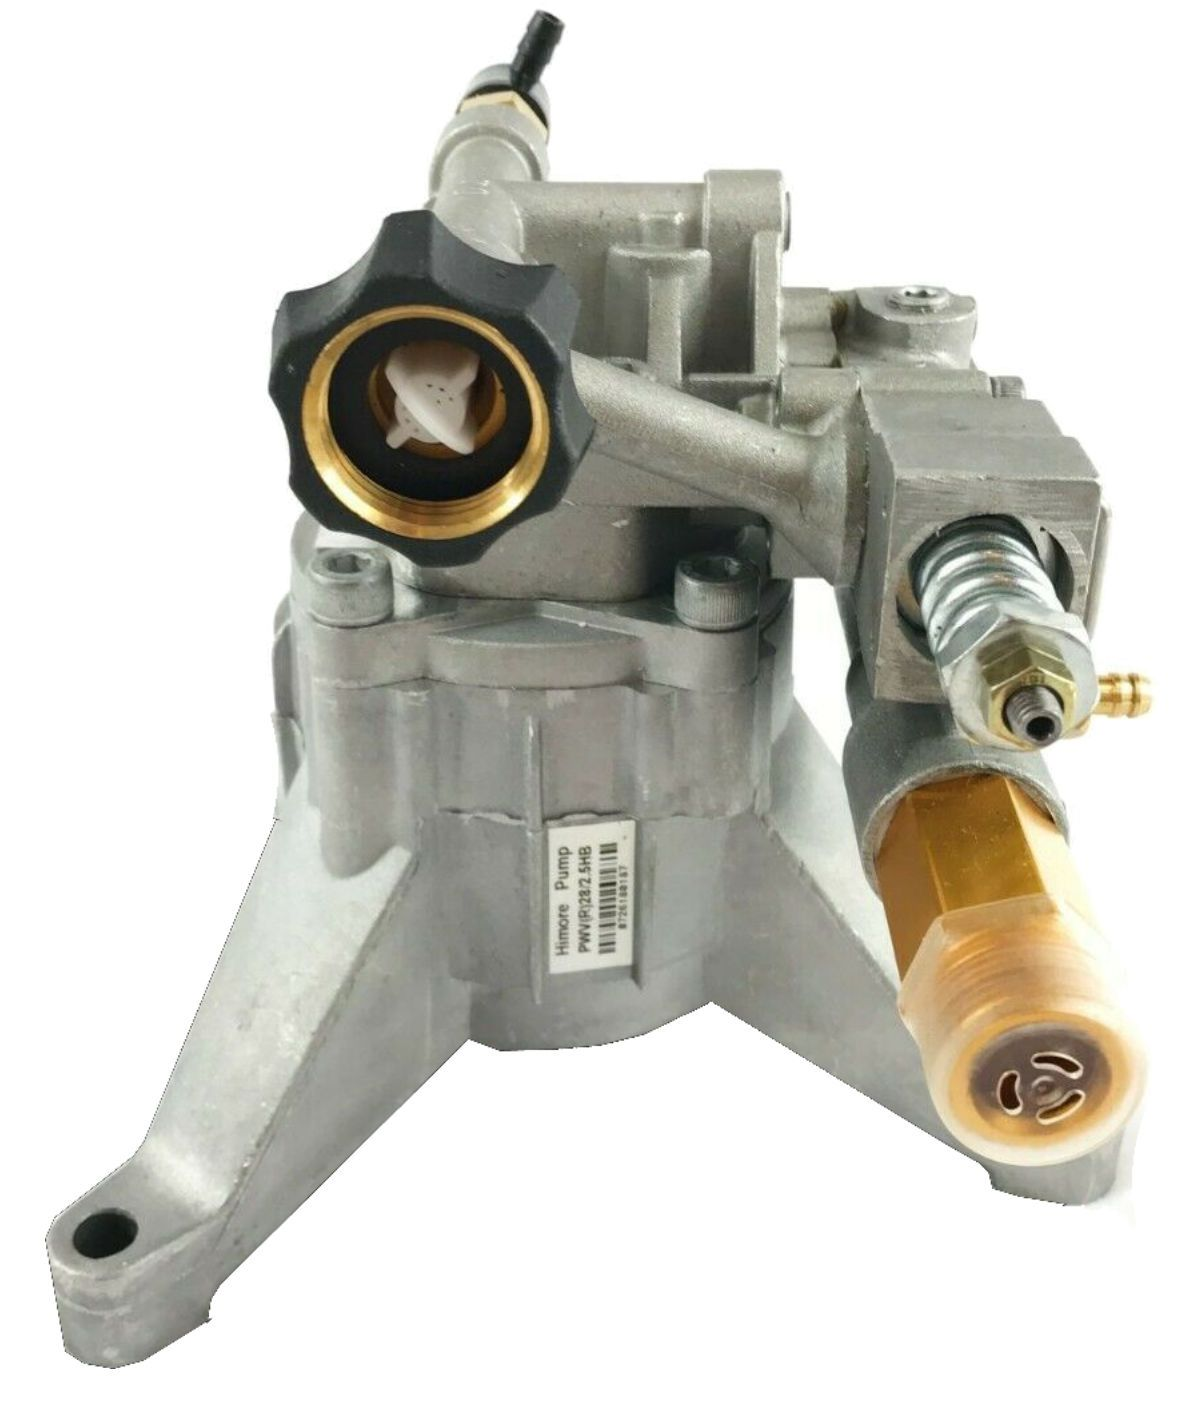 2700 PSI PRESSURE WASHER WATER PUMP fits Sears Craftsman 580.768325 020201-0 - AE-Power